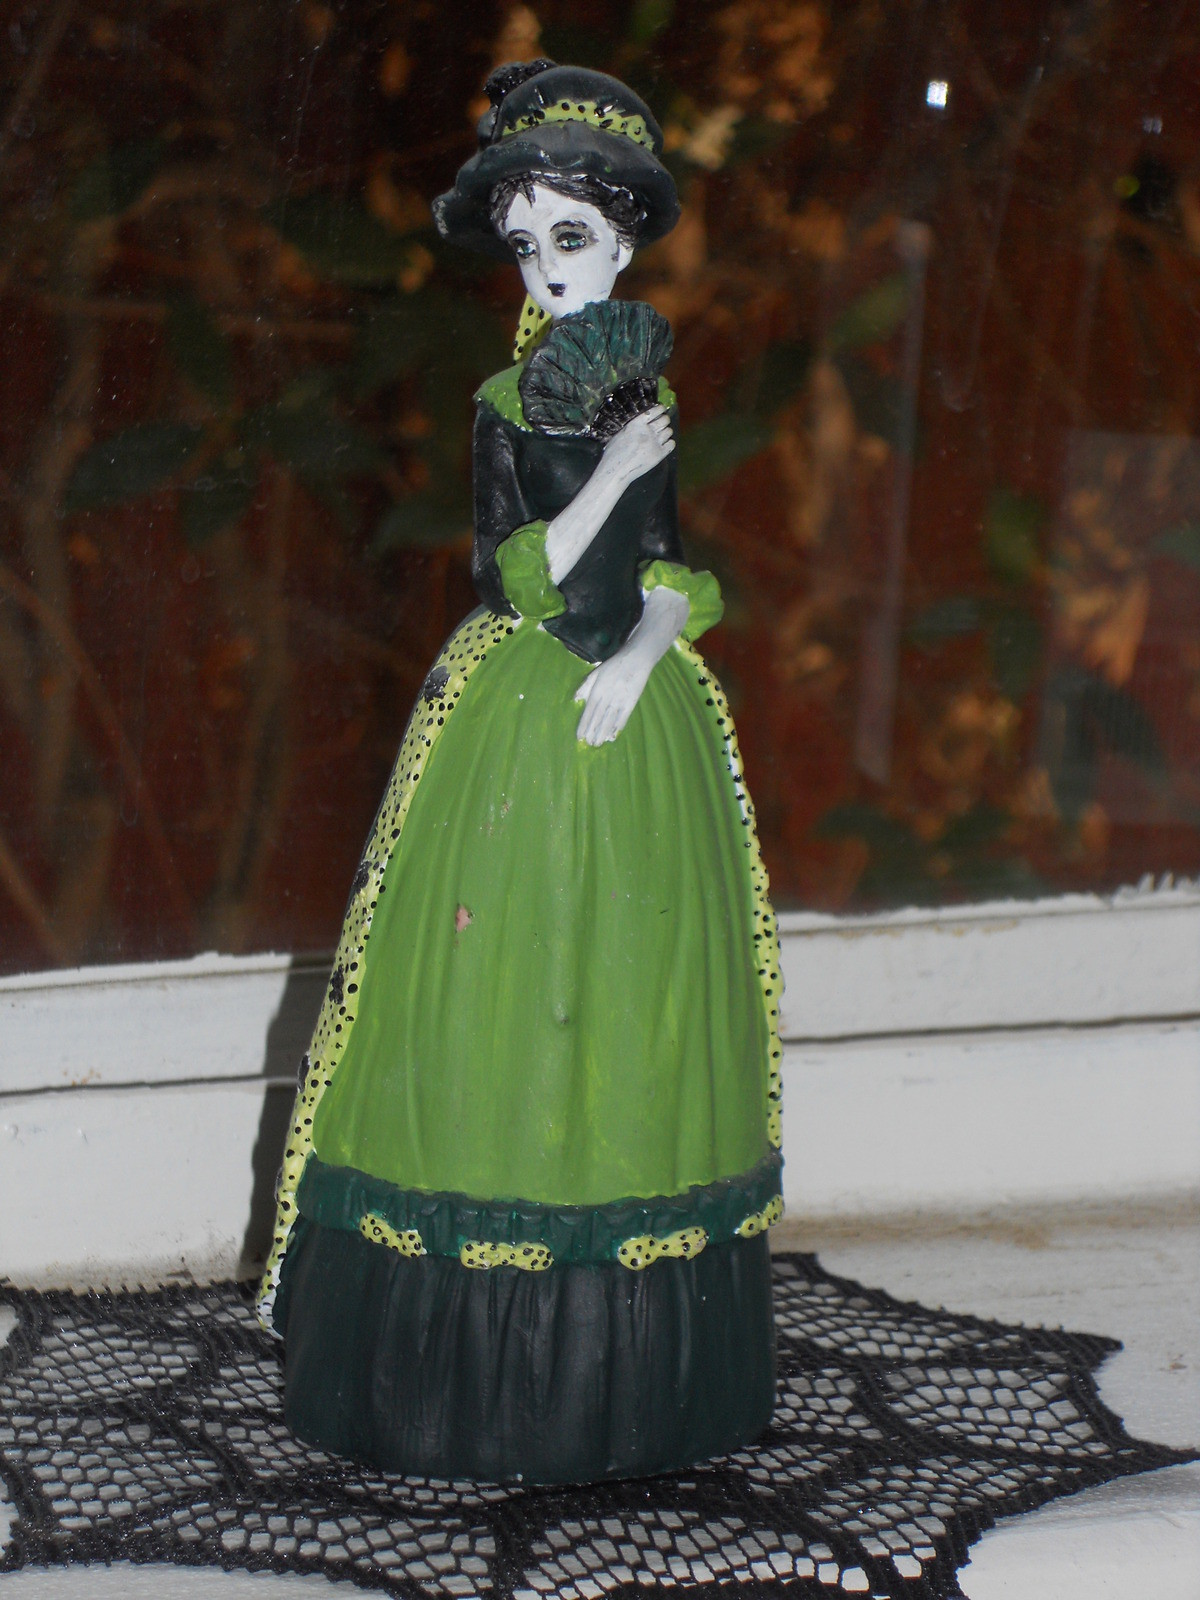 Gothic Resin Doll  A Model Or Sculpture  Decorating on Cut Out  Keep